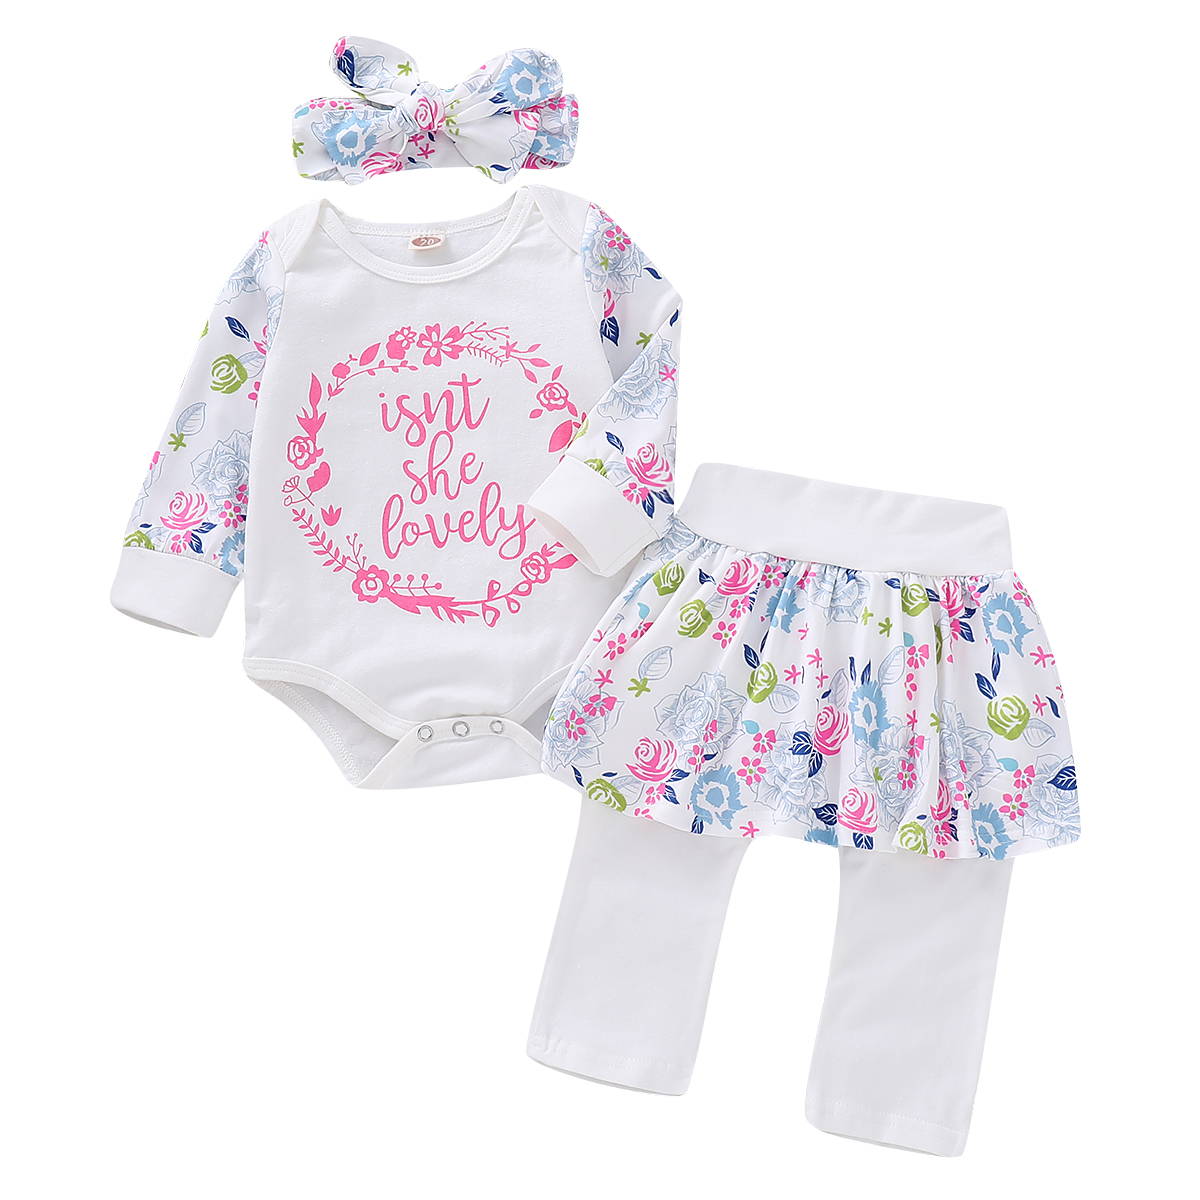 US Newborn Baby Girl Little Sister Tops Romper Flower Pants 3Pcs Outfits Clothes